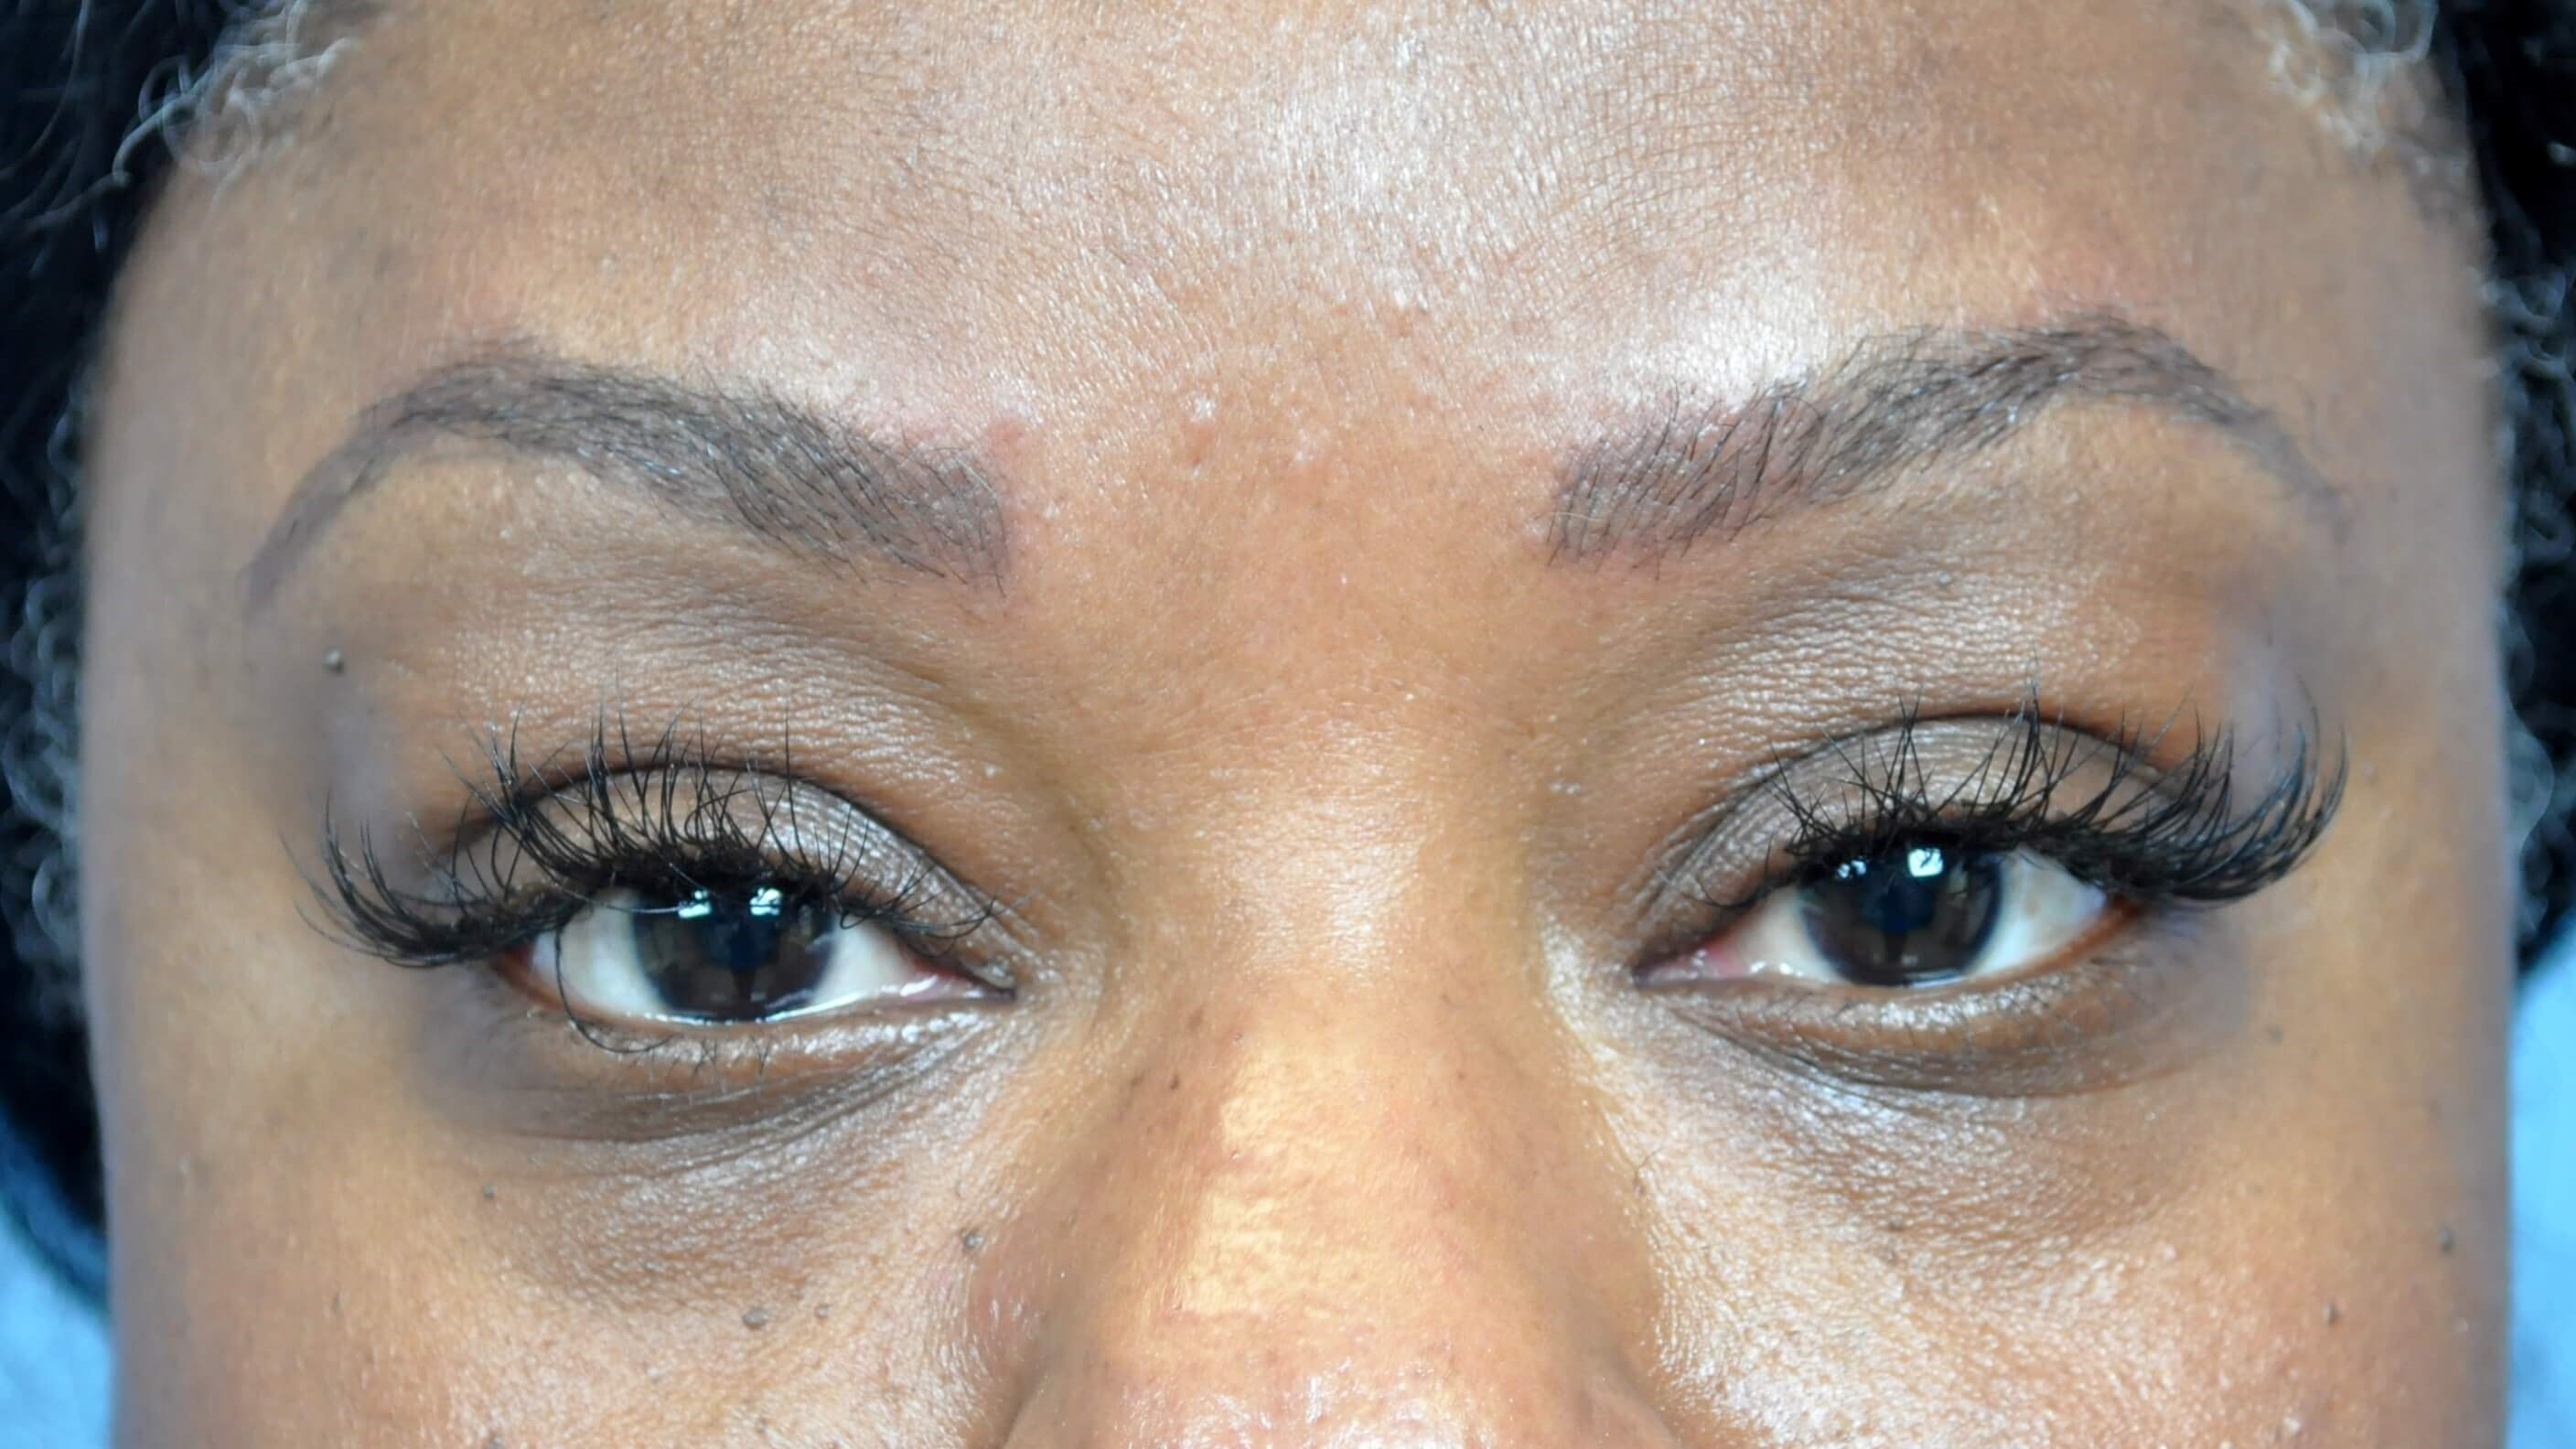 Cosmetic Tattoo Treatment On The Eyebrows For An Atlanta Ga Patient